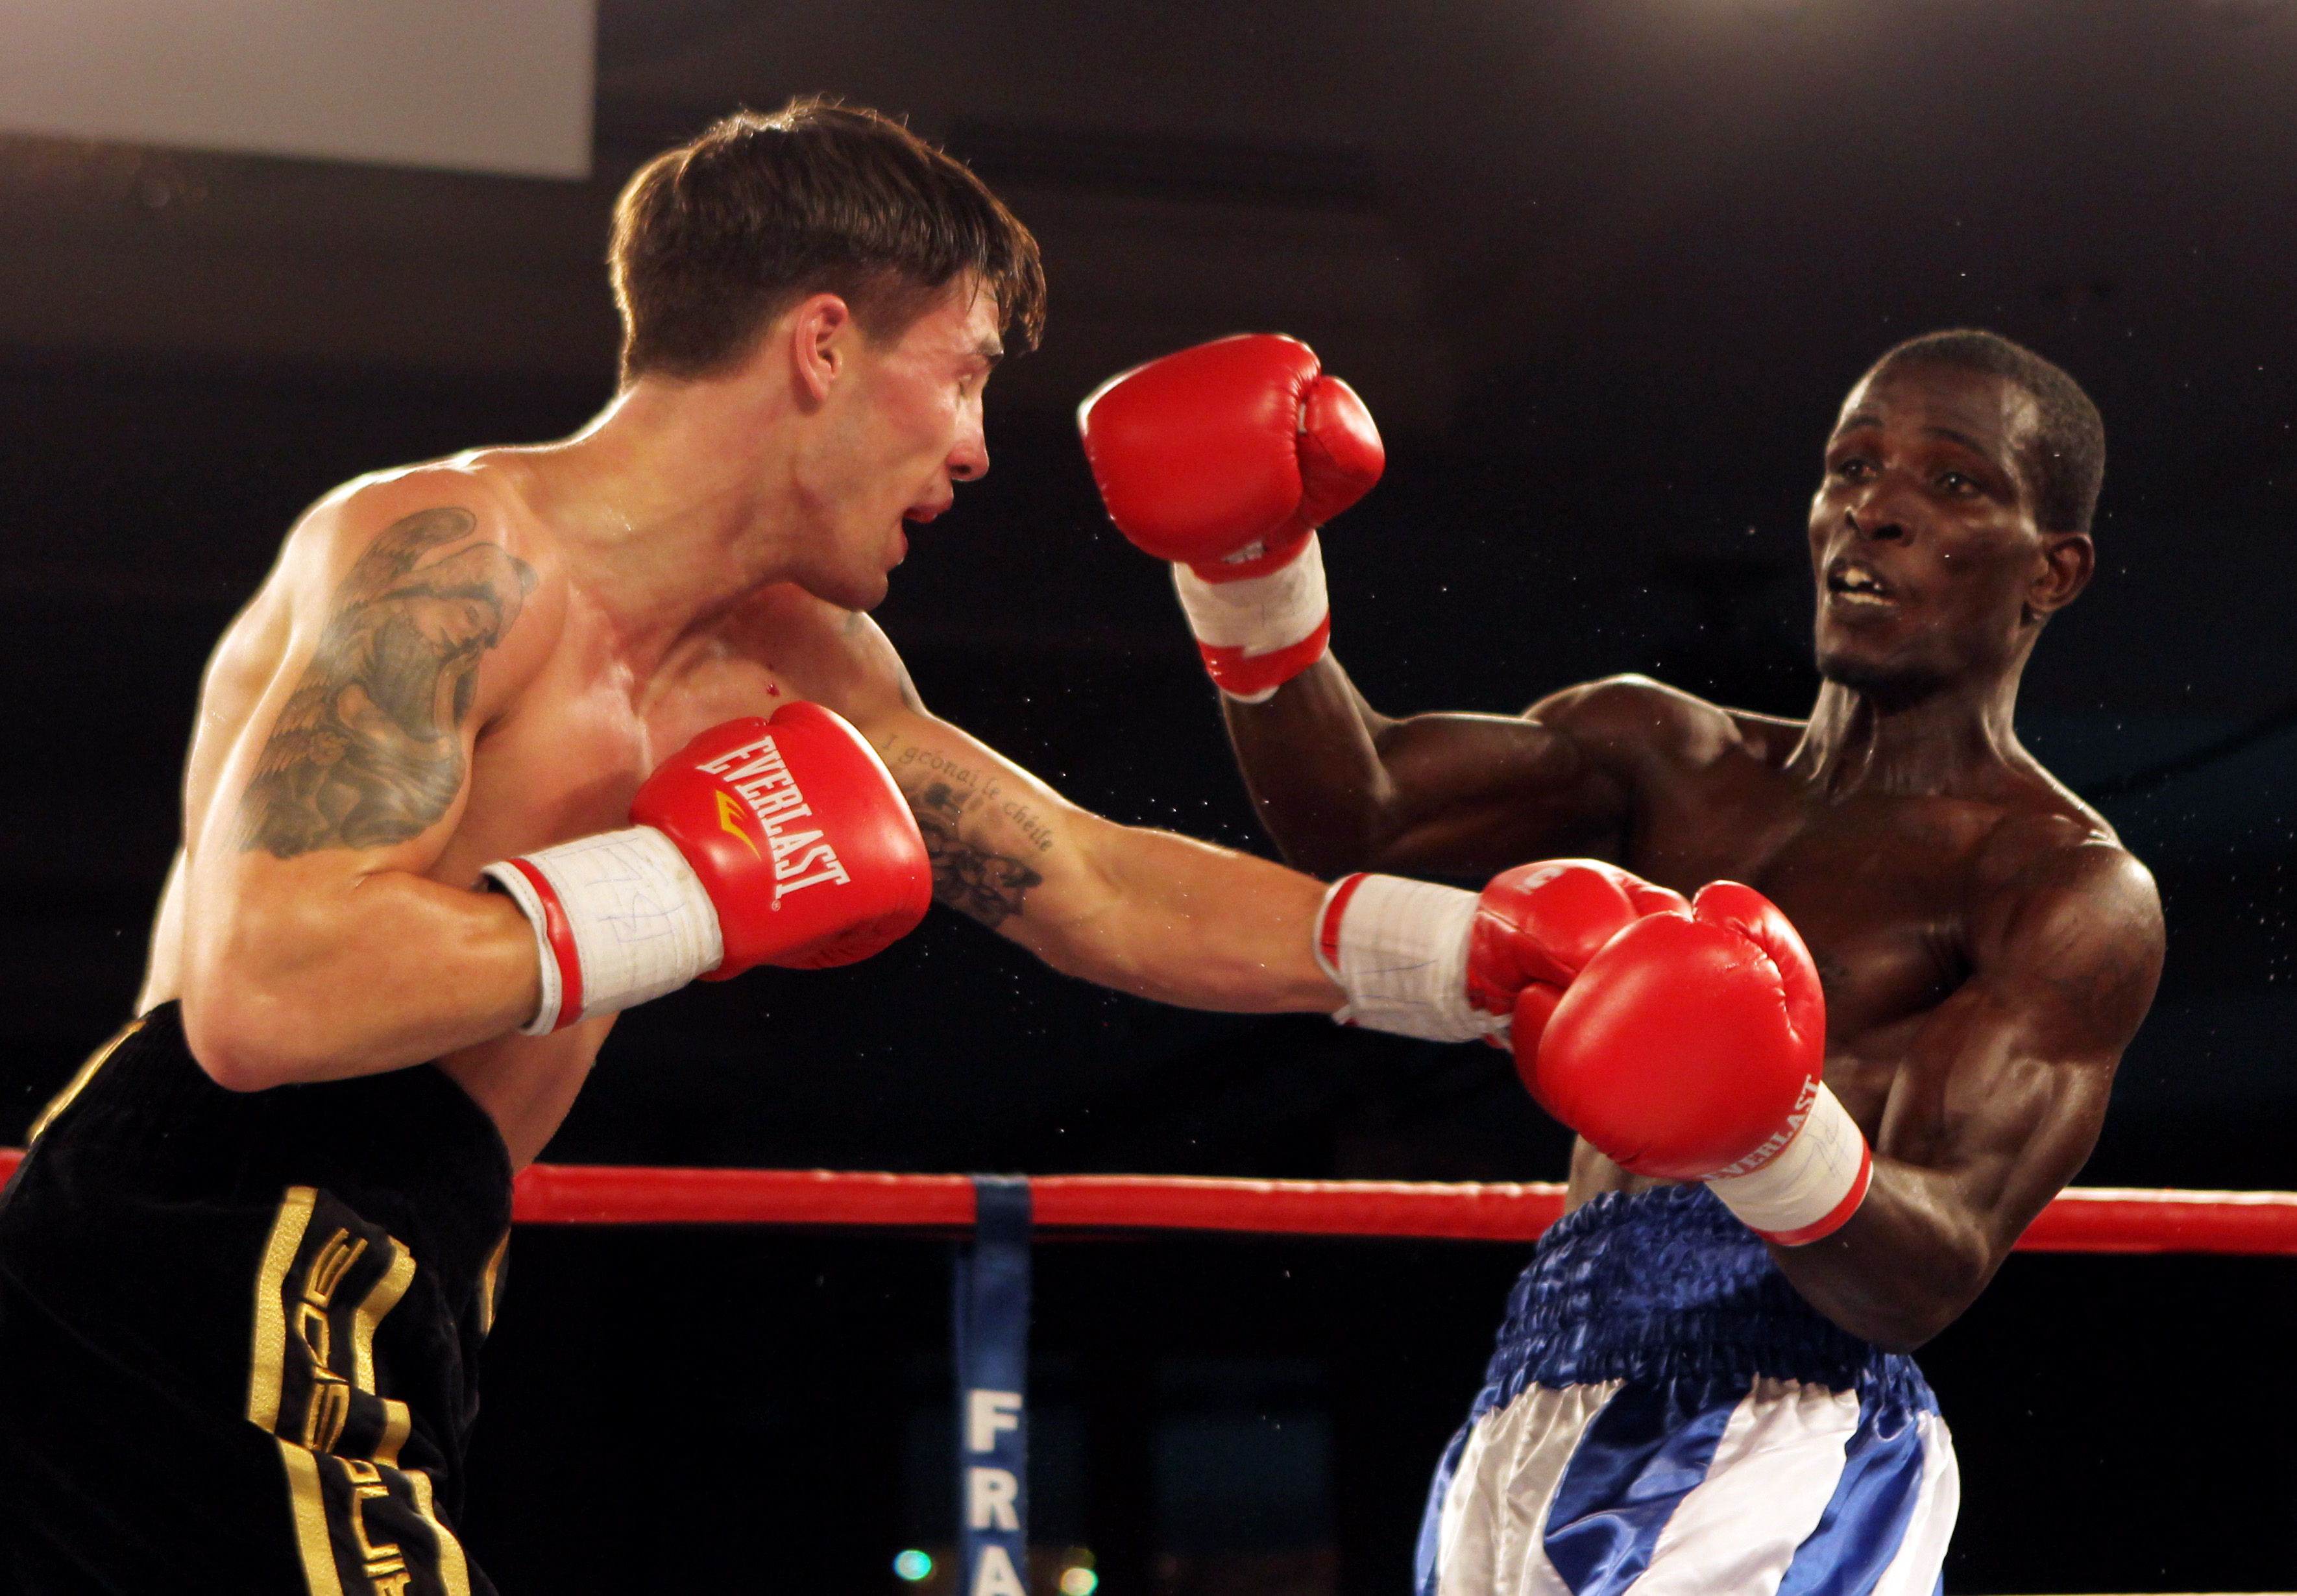 Boxing - Obodai Sai v Jamie Cox - Commonwealth Light-Middleweight Title - Hilton Hotel, Park Lane, London - 9/9/11 Obodai Sai (R) in action against Jamie Cox  Mandatory Credit: Action Images / Paul Childs